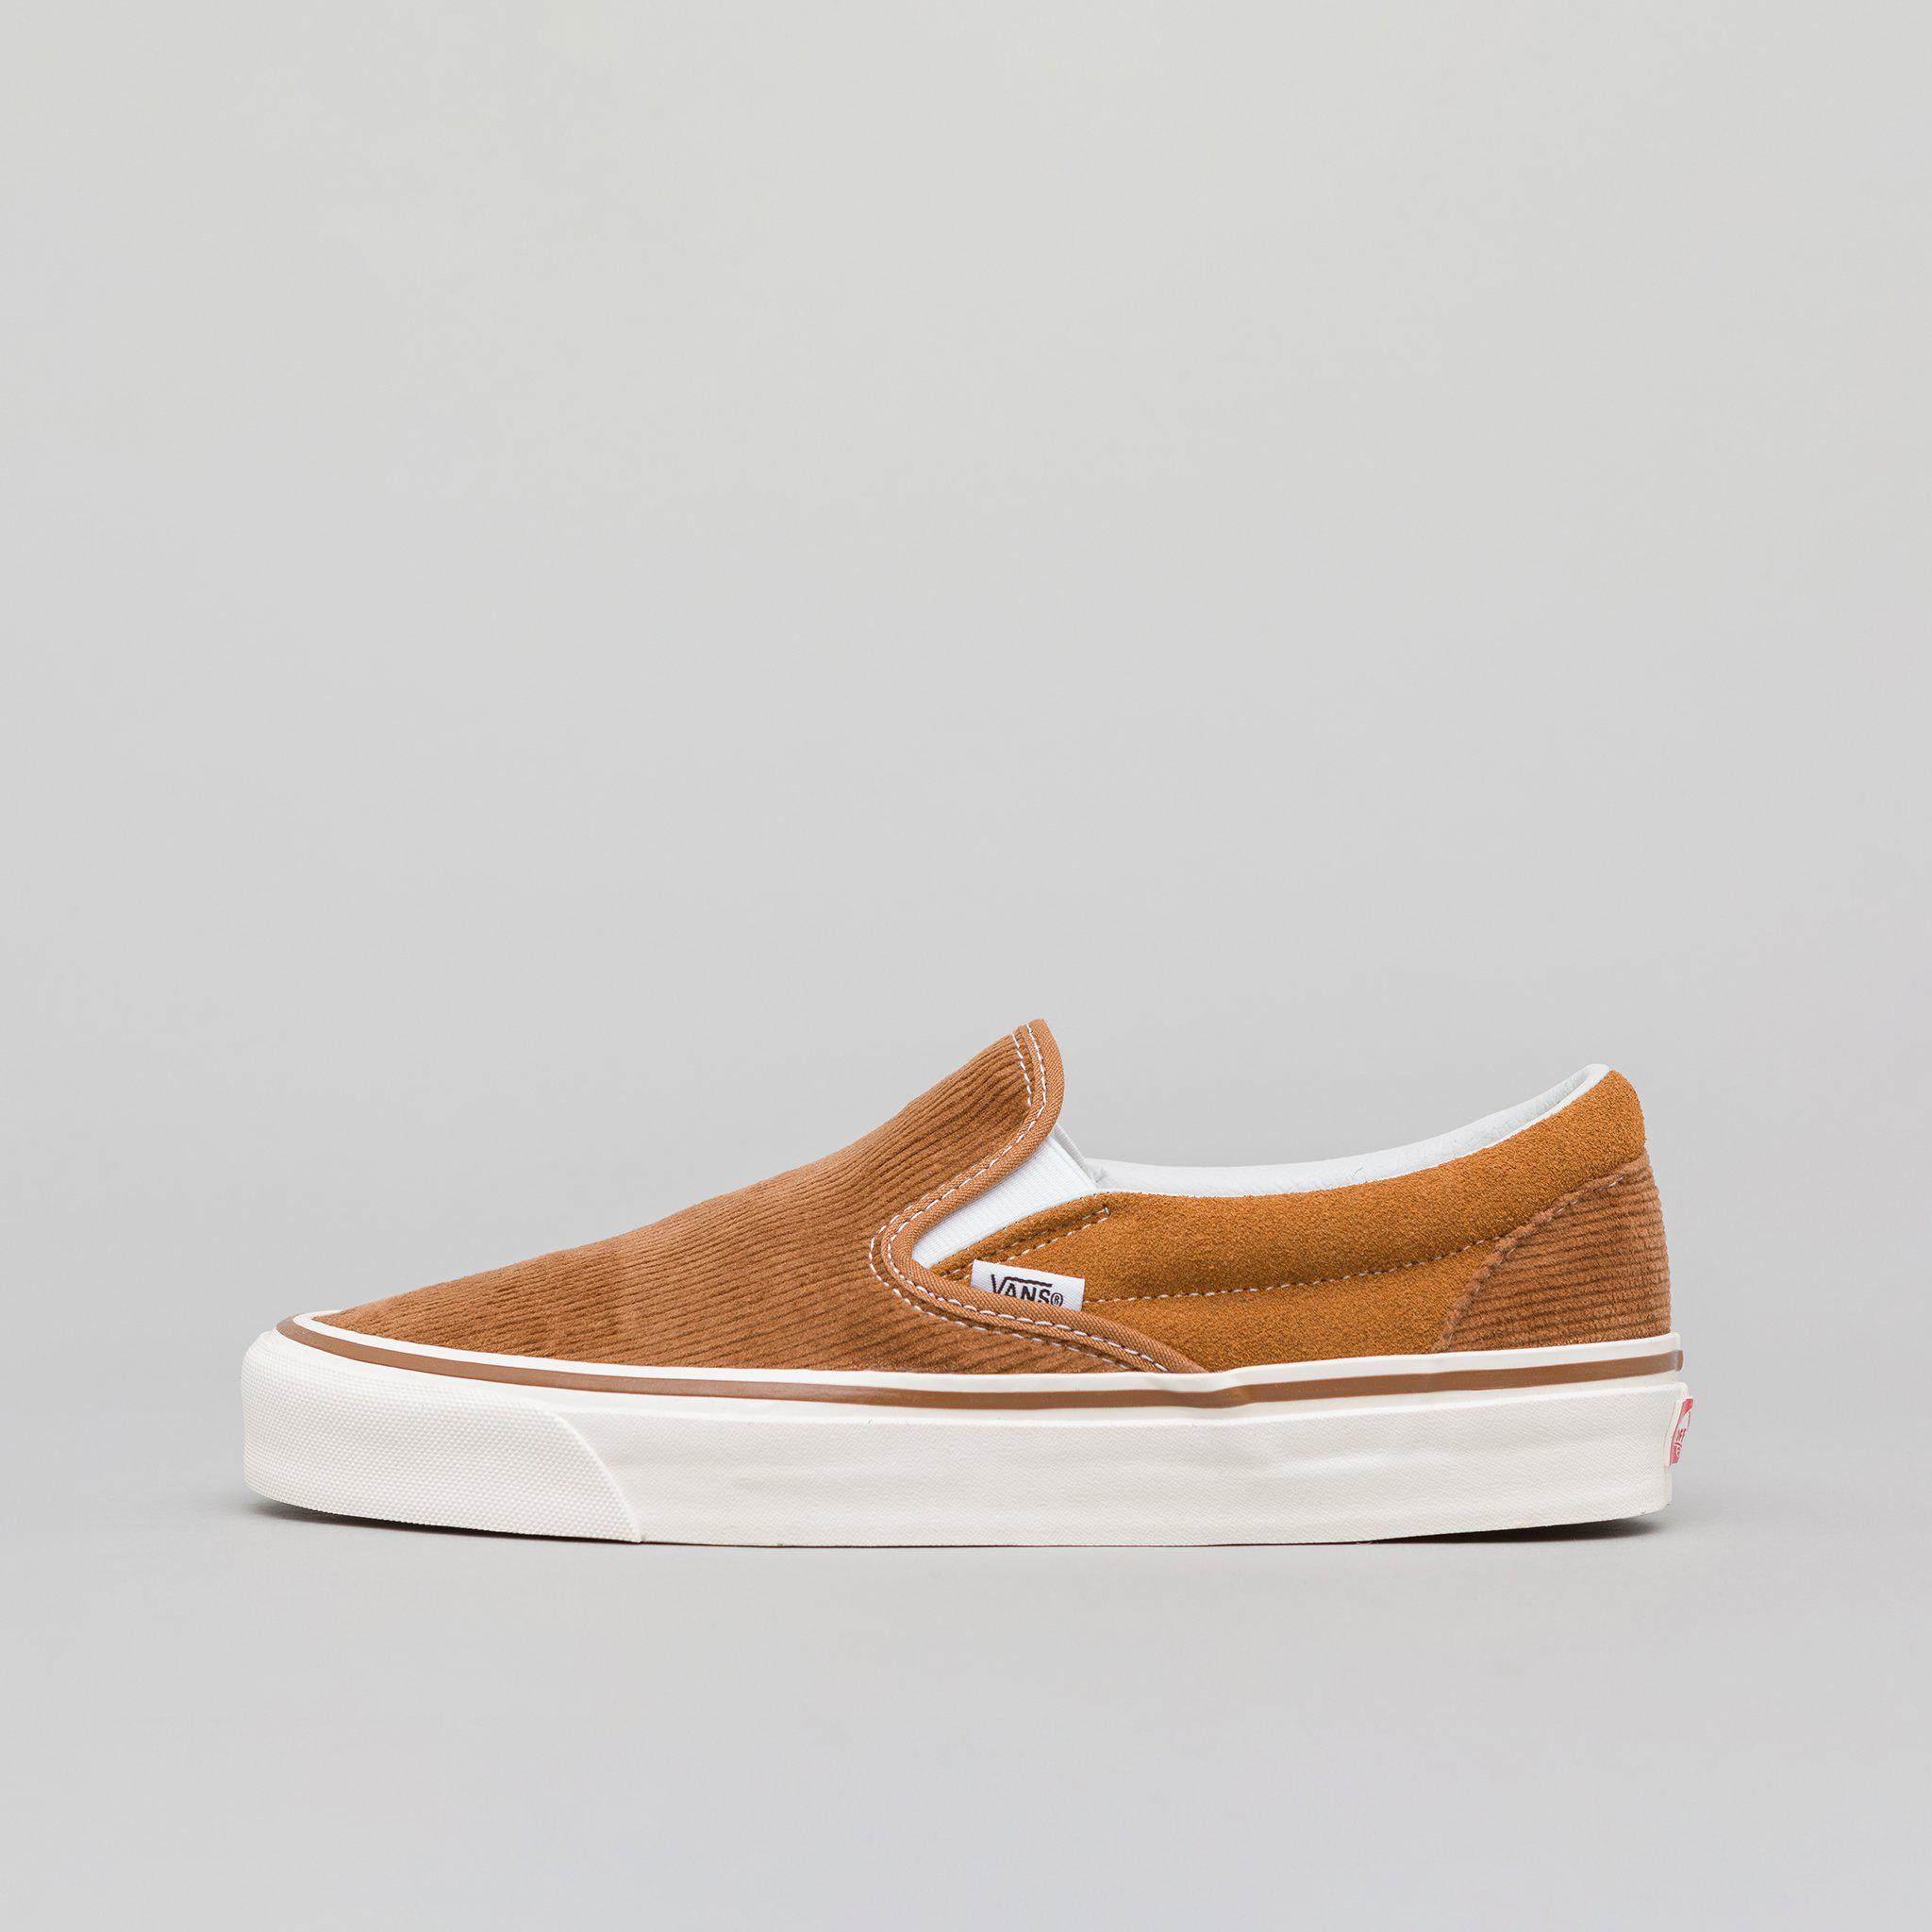 32652f57089 Lyst - Vans Classic Slip-on 9 In Og Hart for Men